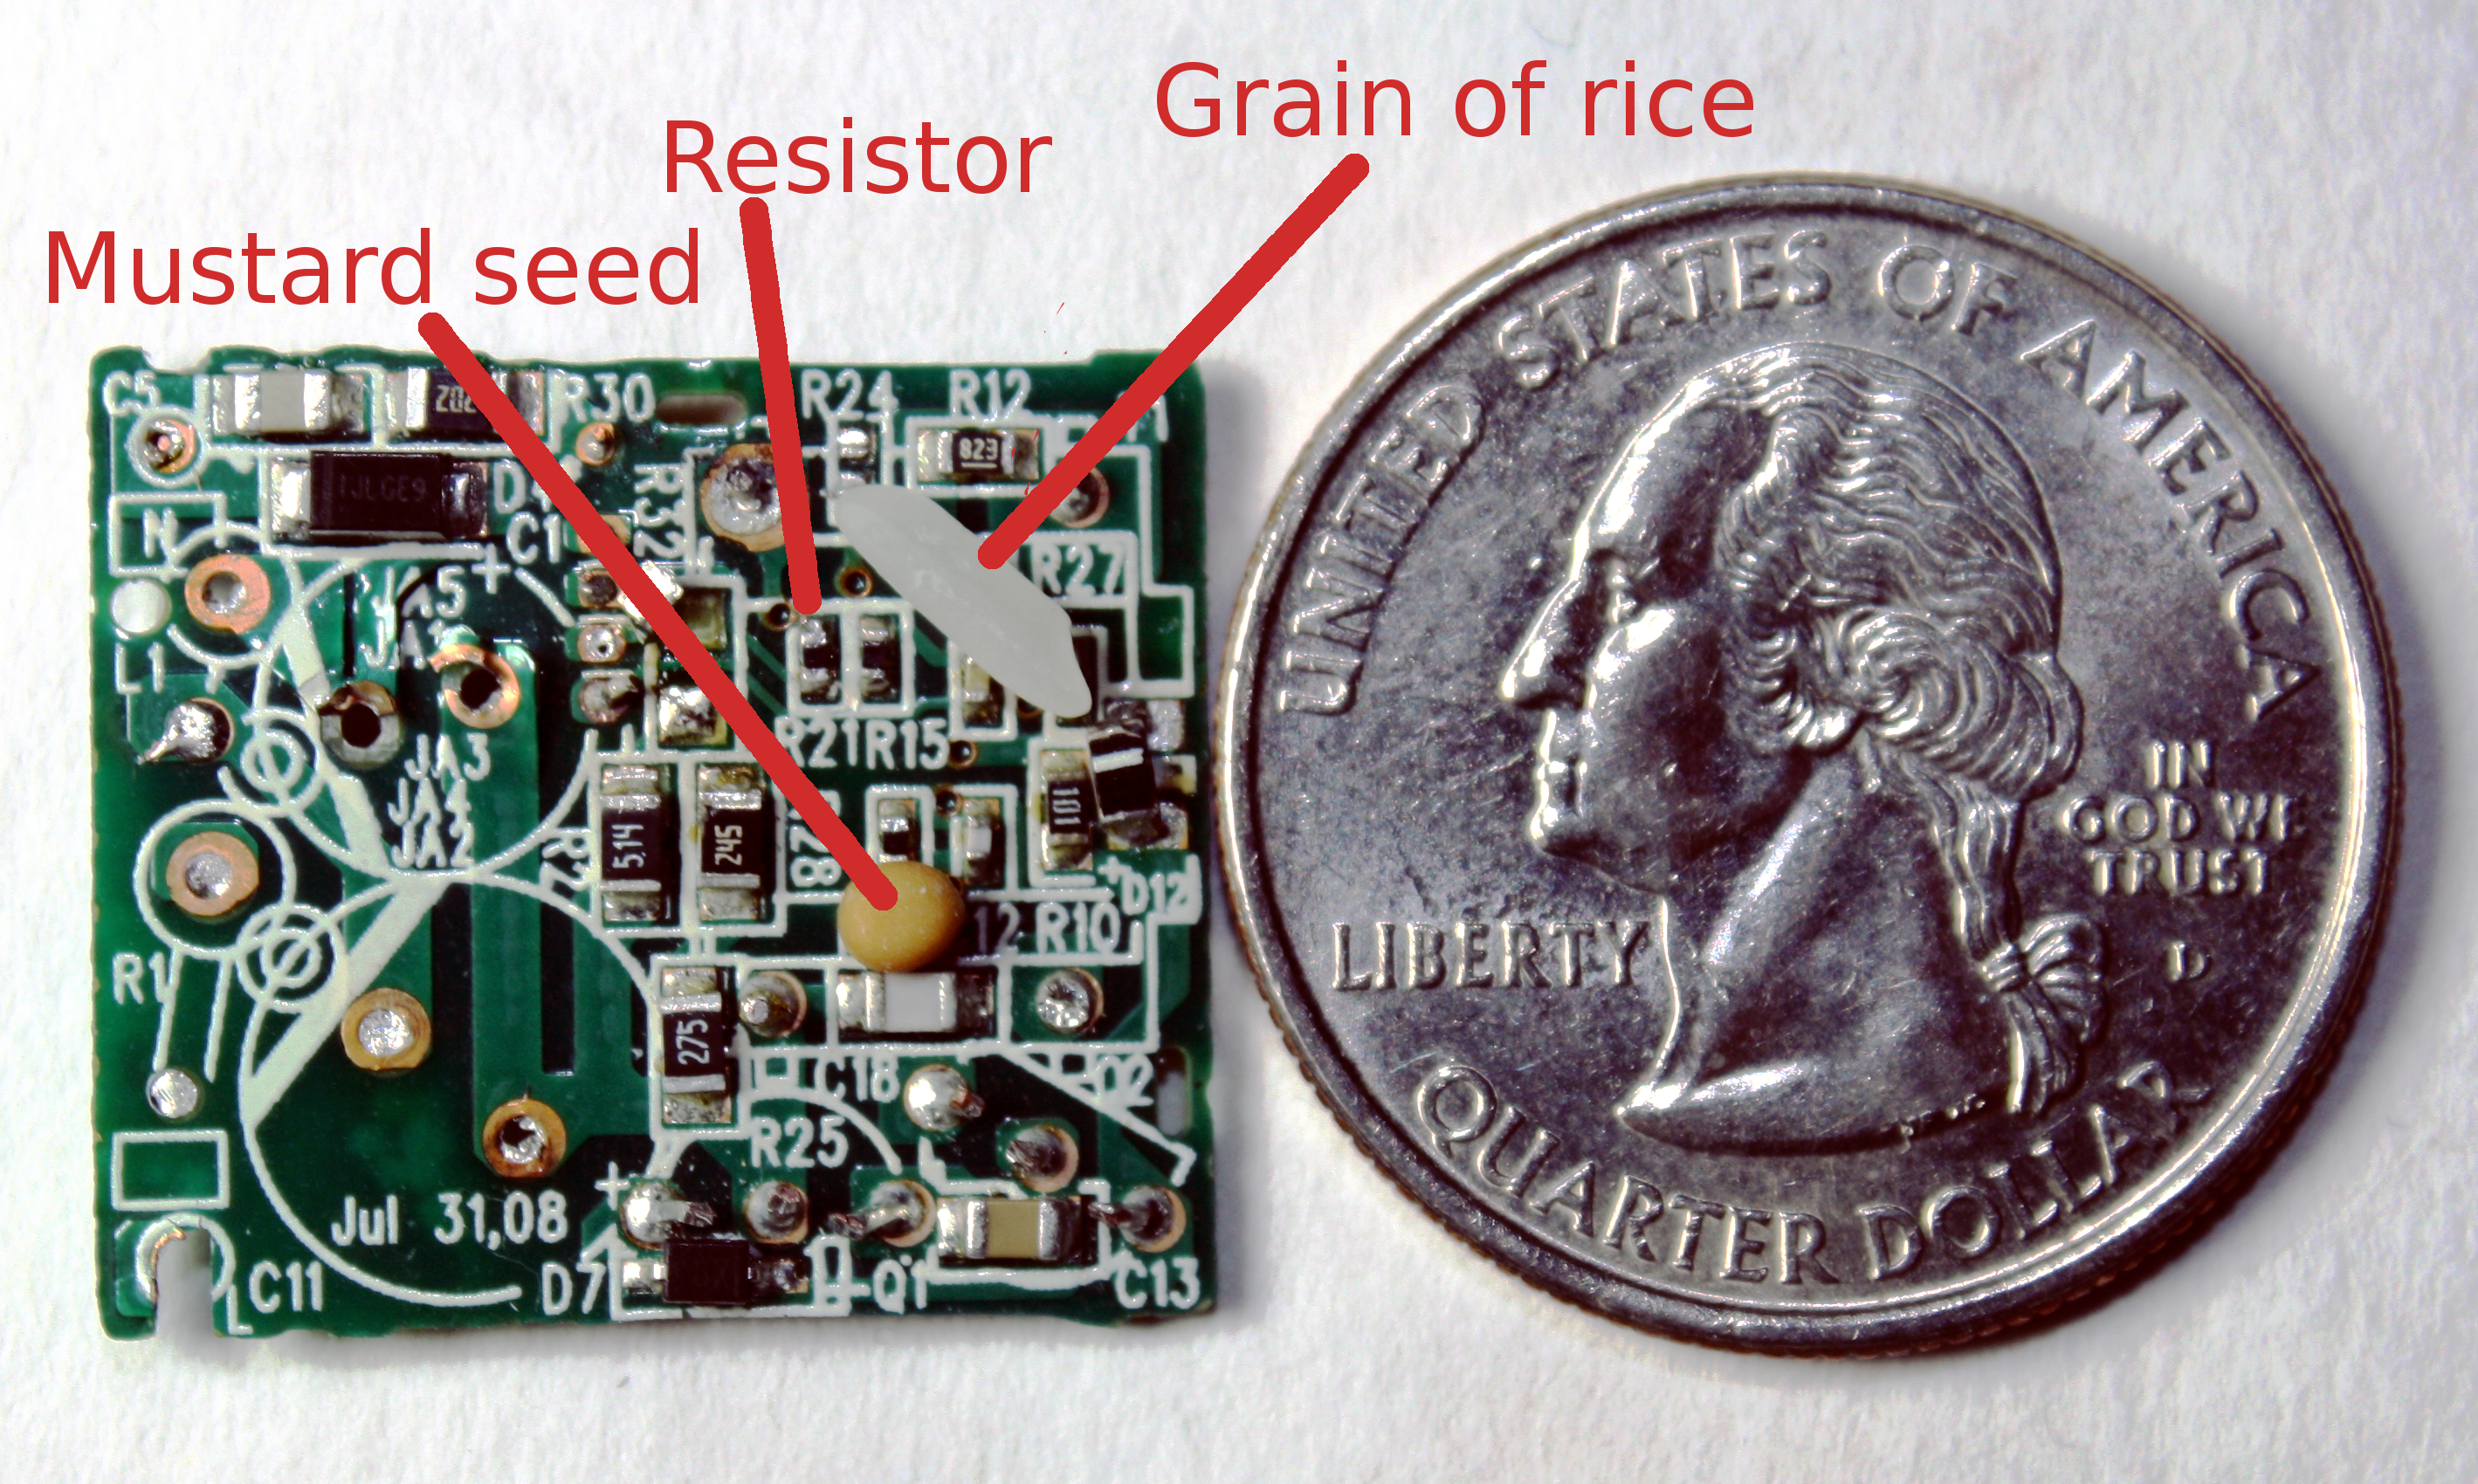 Apple Iphone Charger Teardown Quality In A Tiny Expensive Package On The Troubleshooting And Repair Of Small Switchmode Power Supplies Circuit Board Compared To Mustard Seed Grain Rice